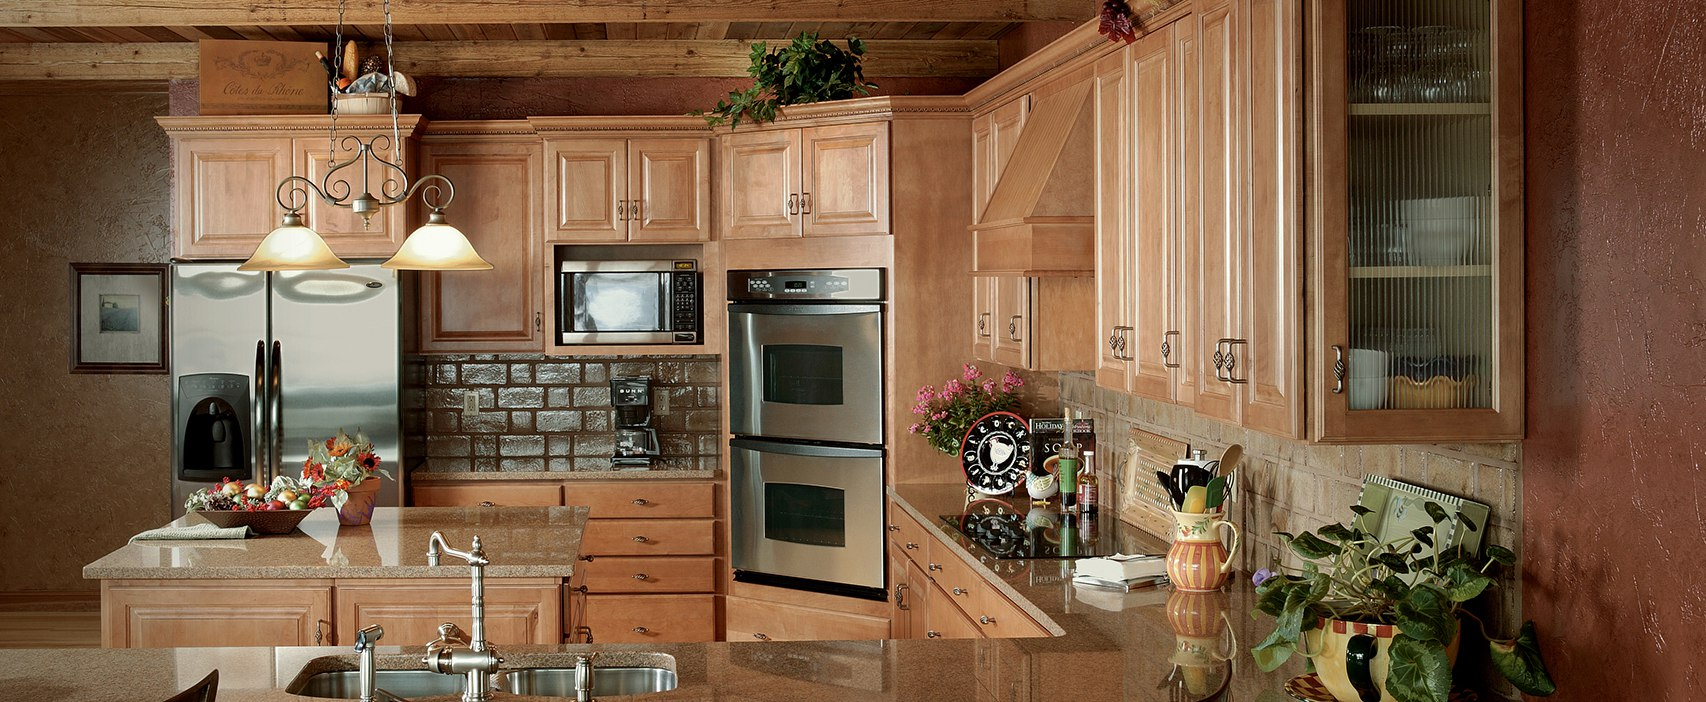 Showplace Cabinets For Your Kitchen